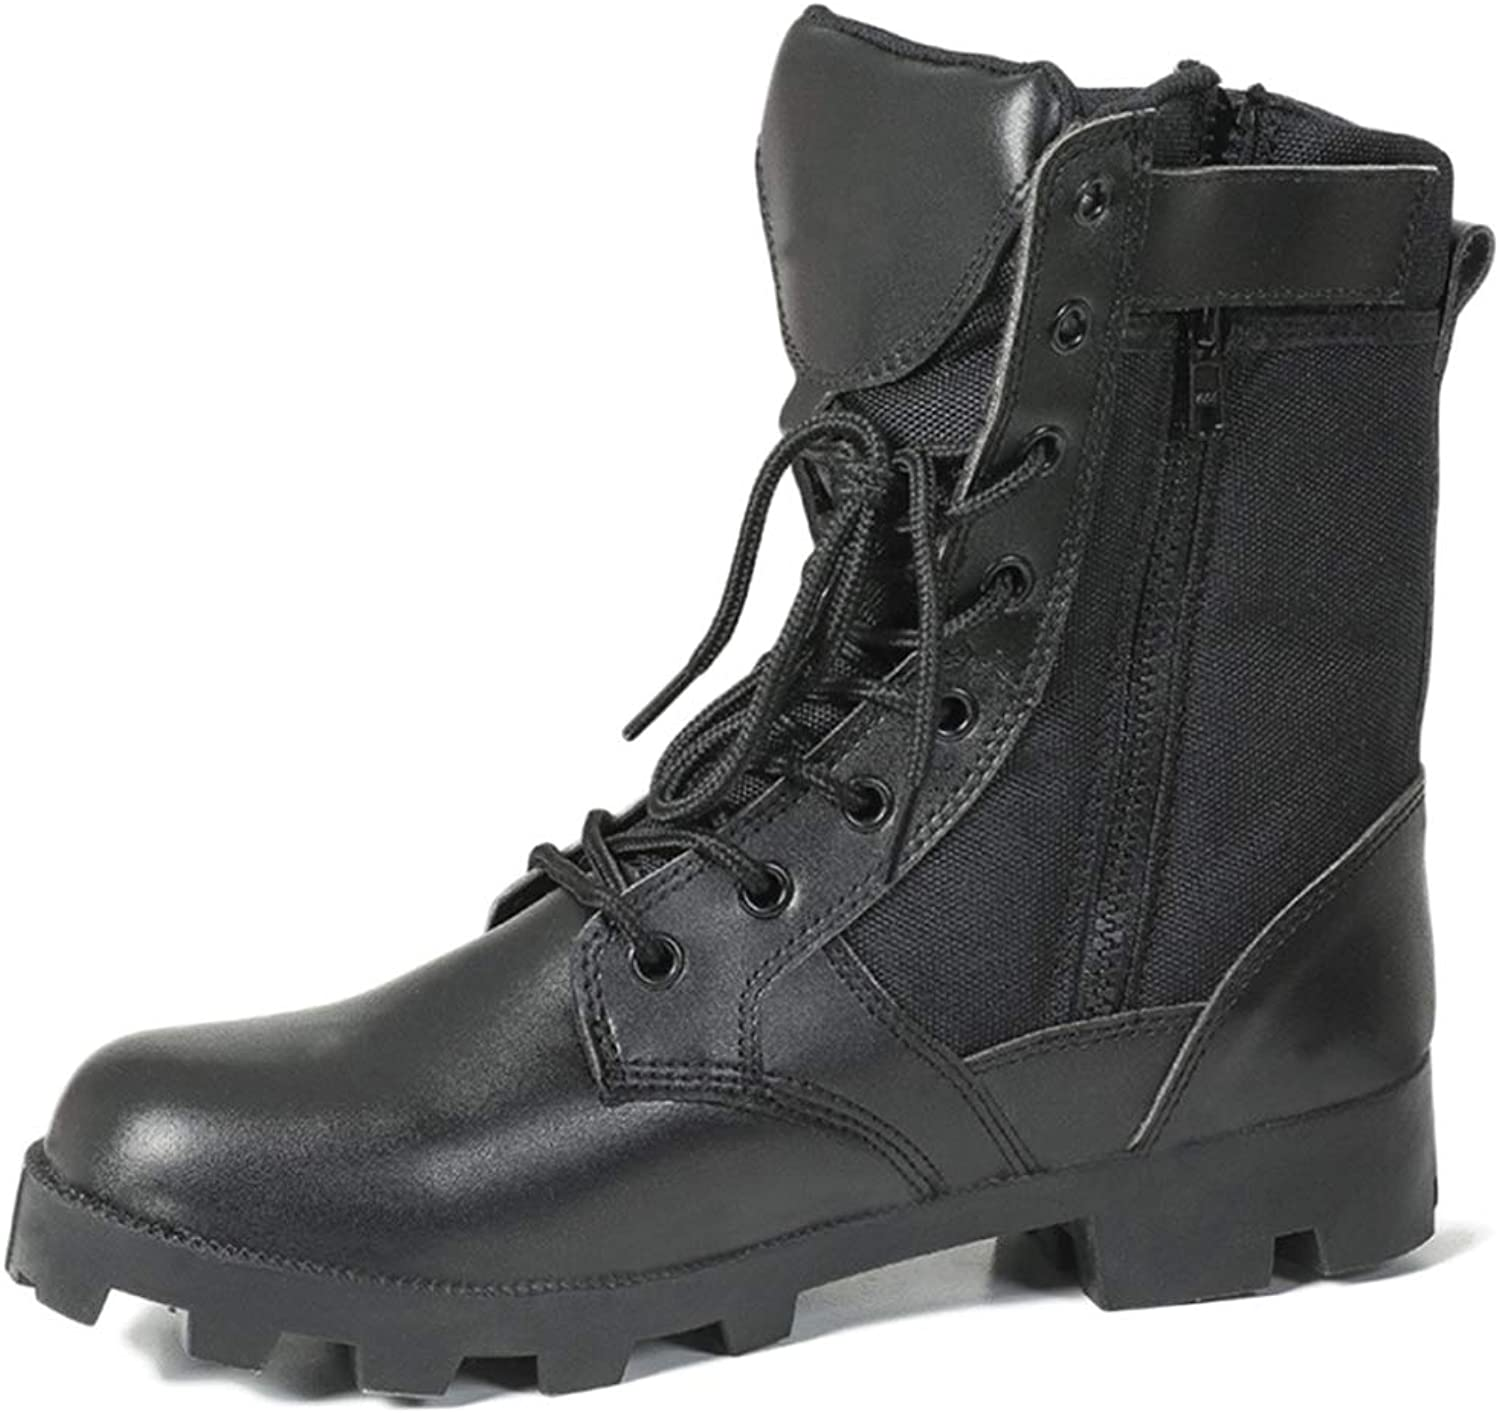 Mens Combat Army Boots Desert Tactics Trained Boot Outdoor Mountaineering shoes Armed Assault Footwear